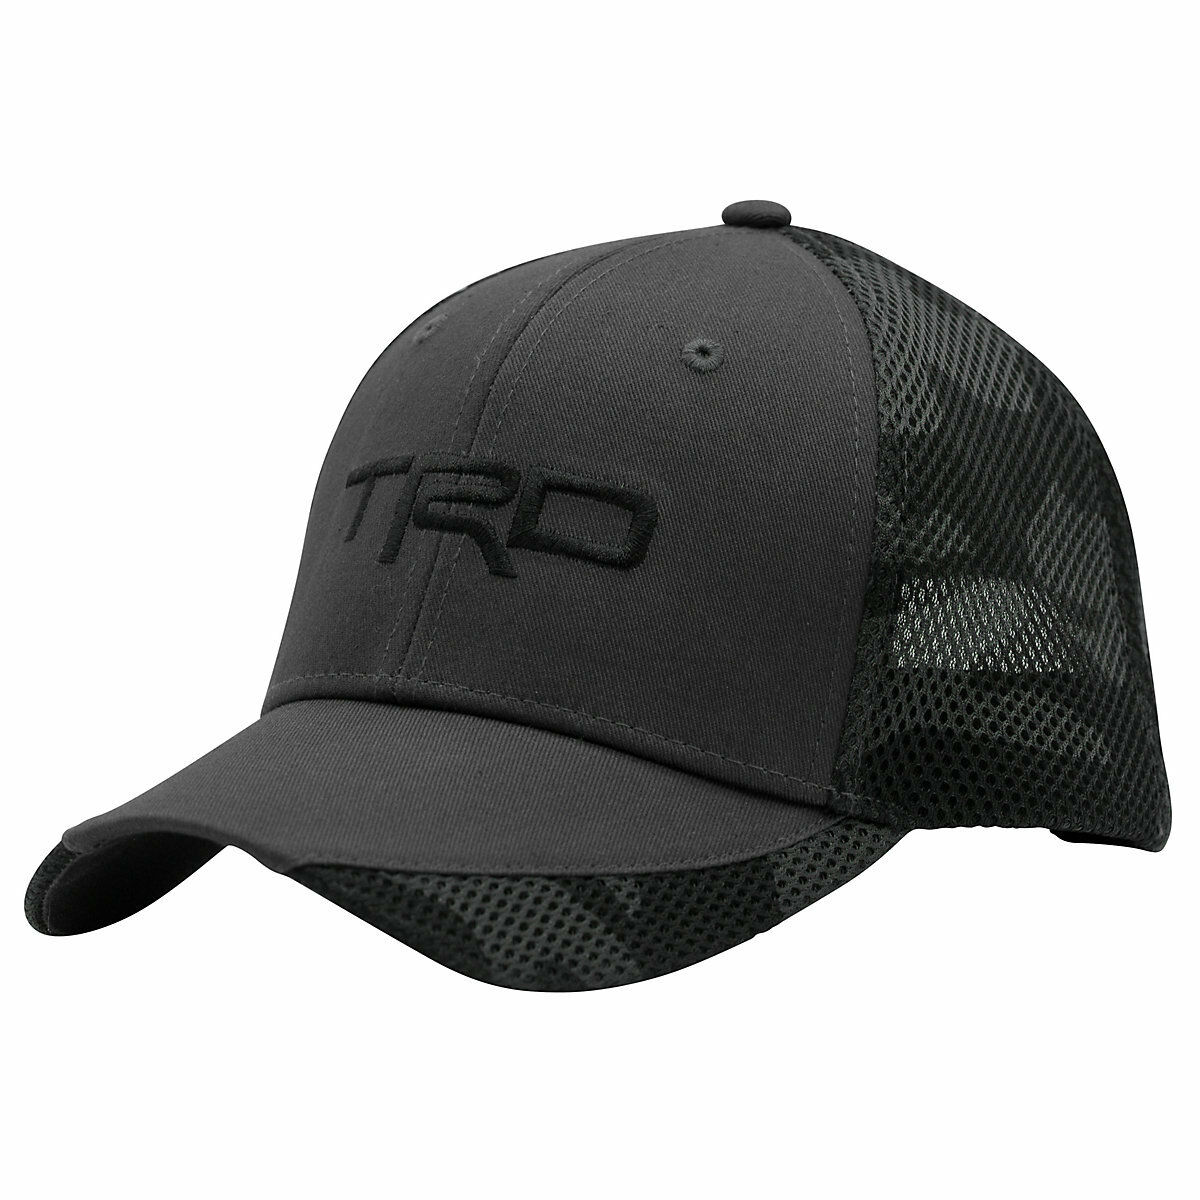 Toyota TRD Gray Camo and Black Camo Gray Cotton/Polyester Hat acf42f